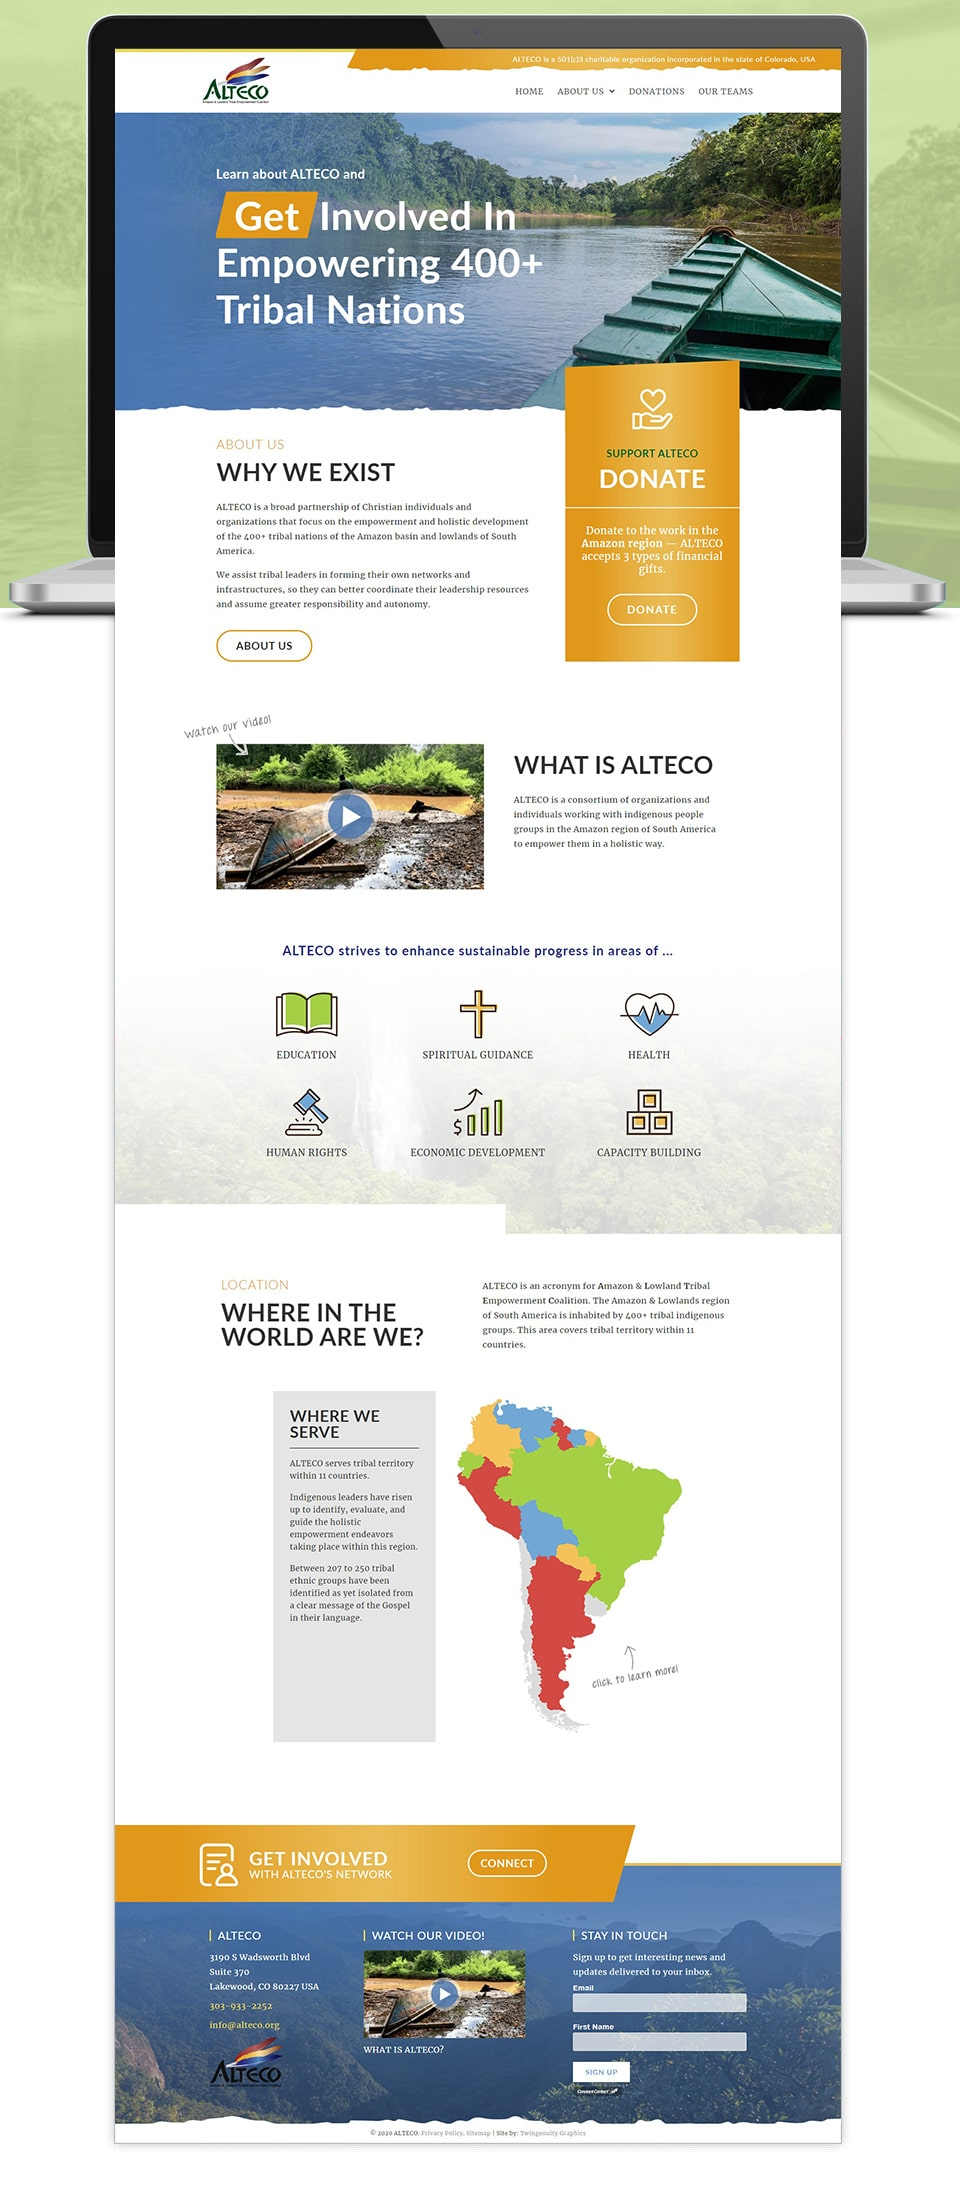 ALTECO website home page design